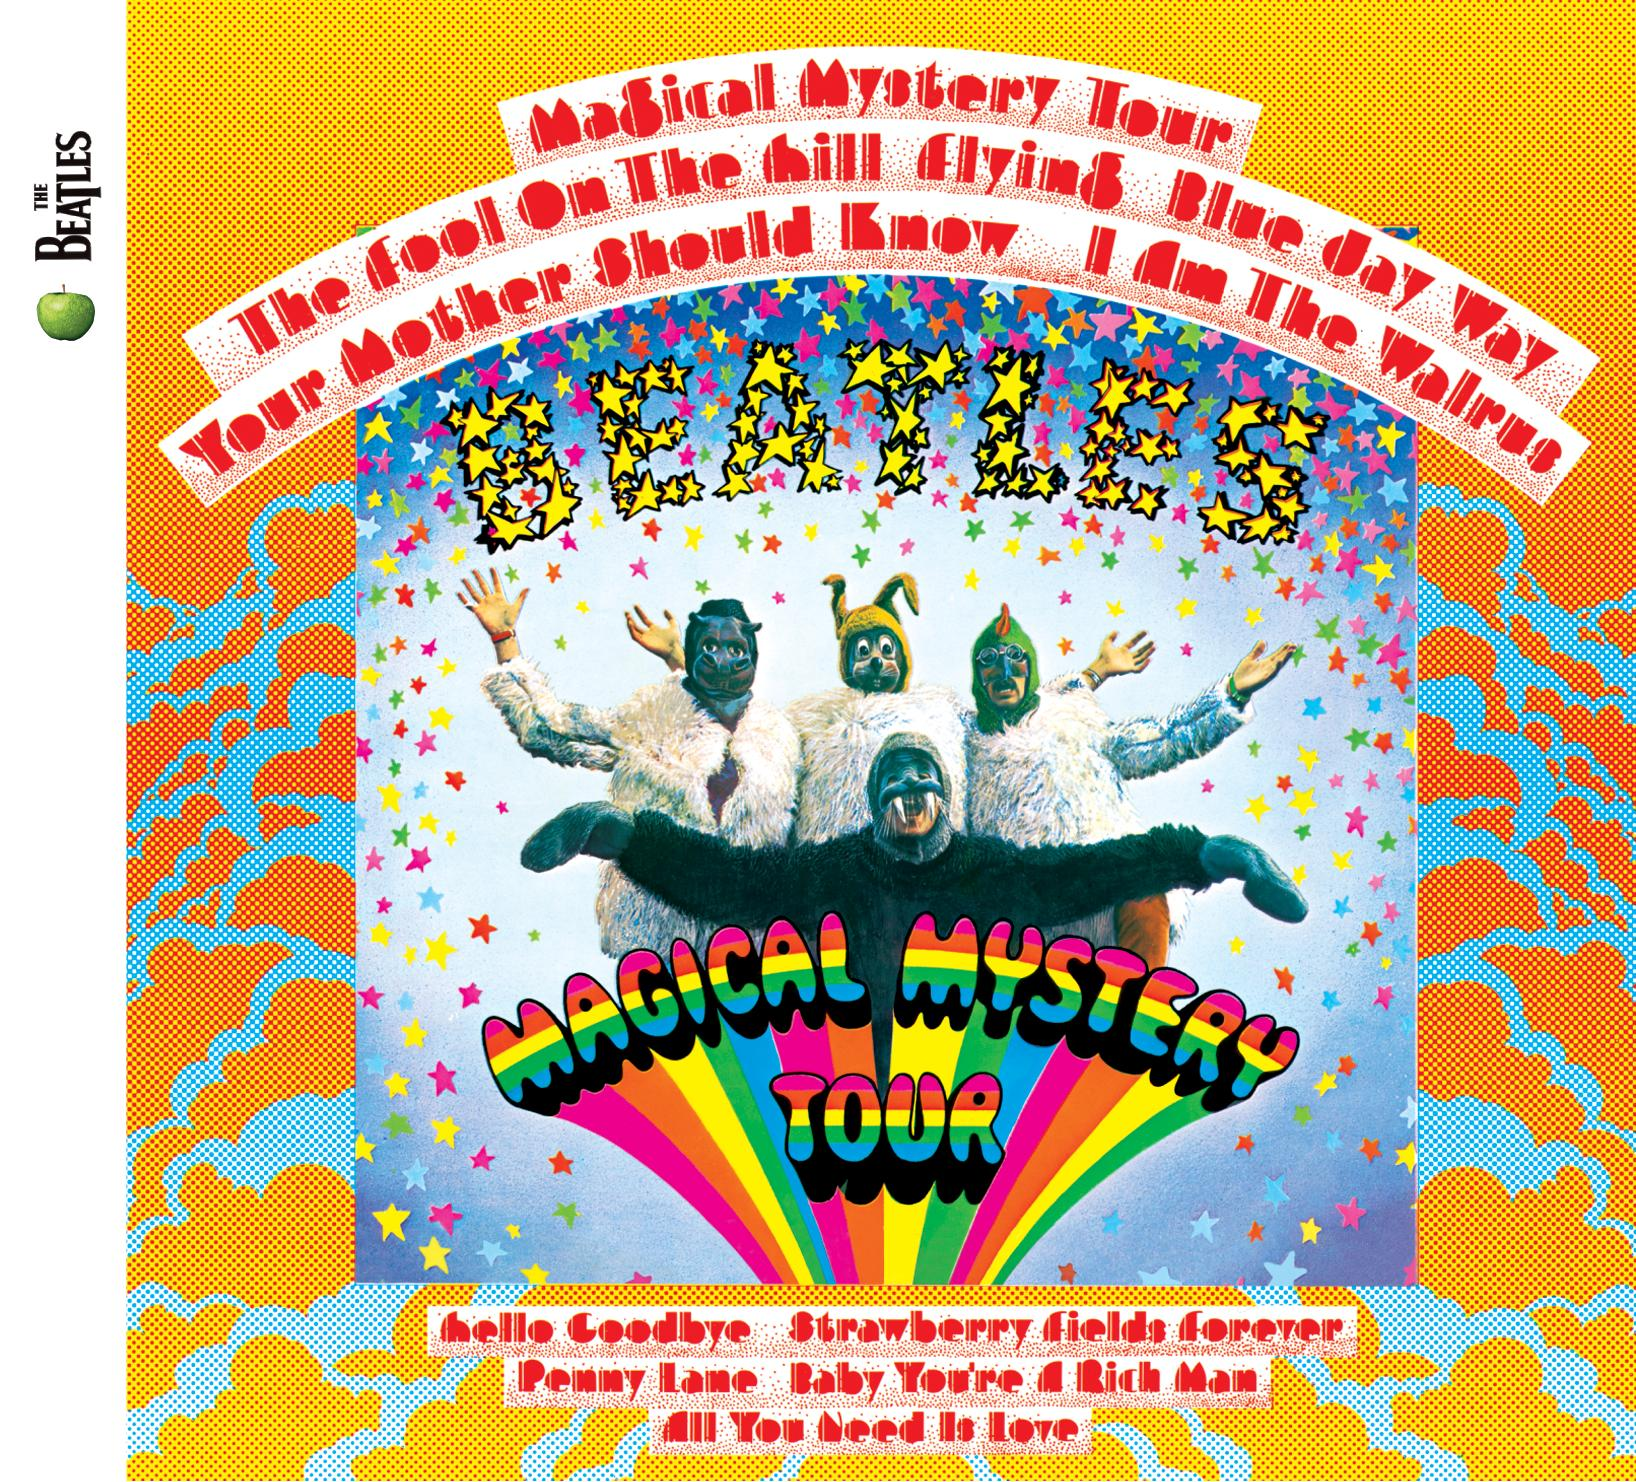 The Beatles - Magical Mystery Tour -CD cover art